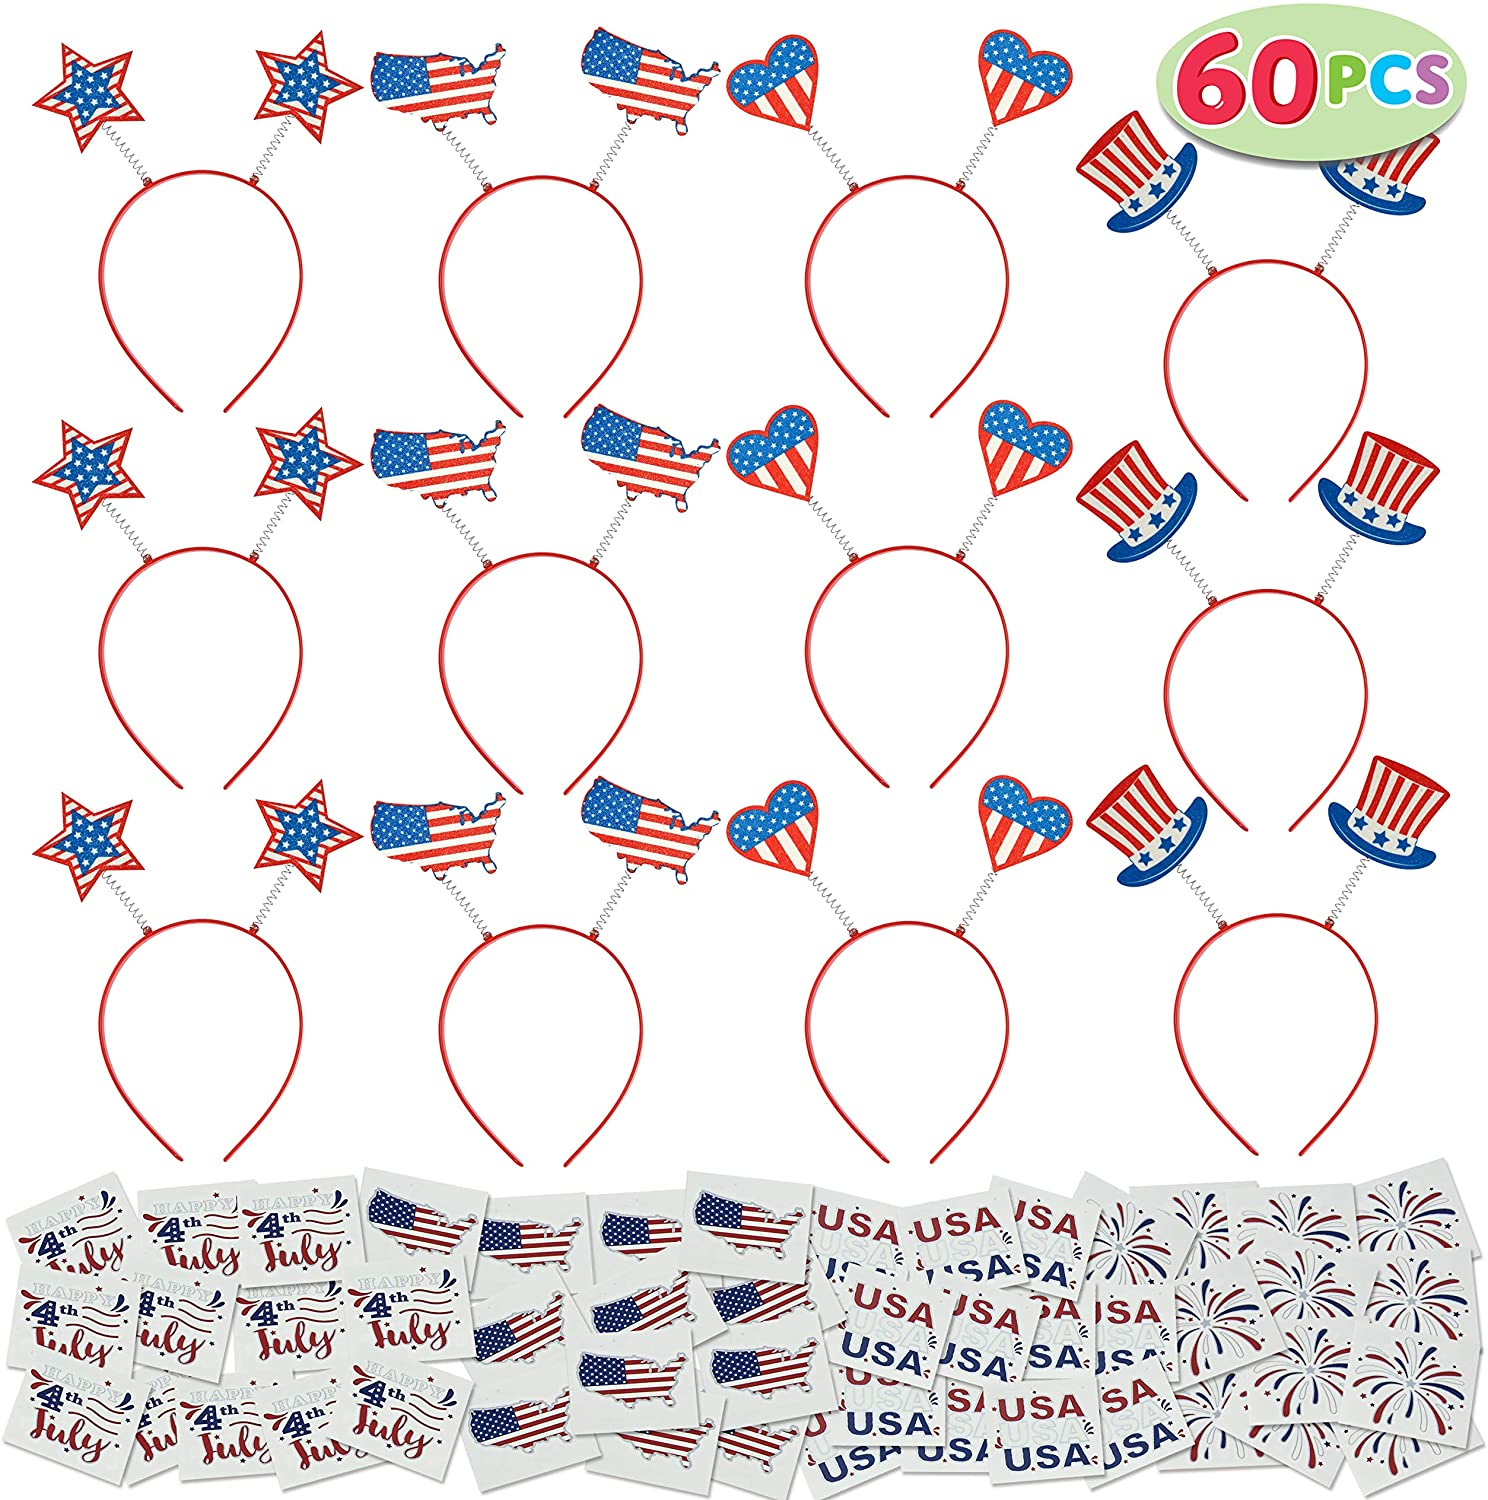 60 Pcs Patriotic Party Favor